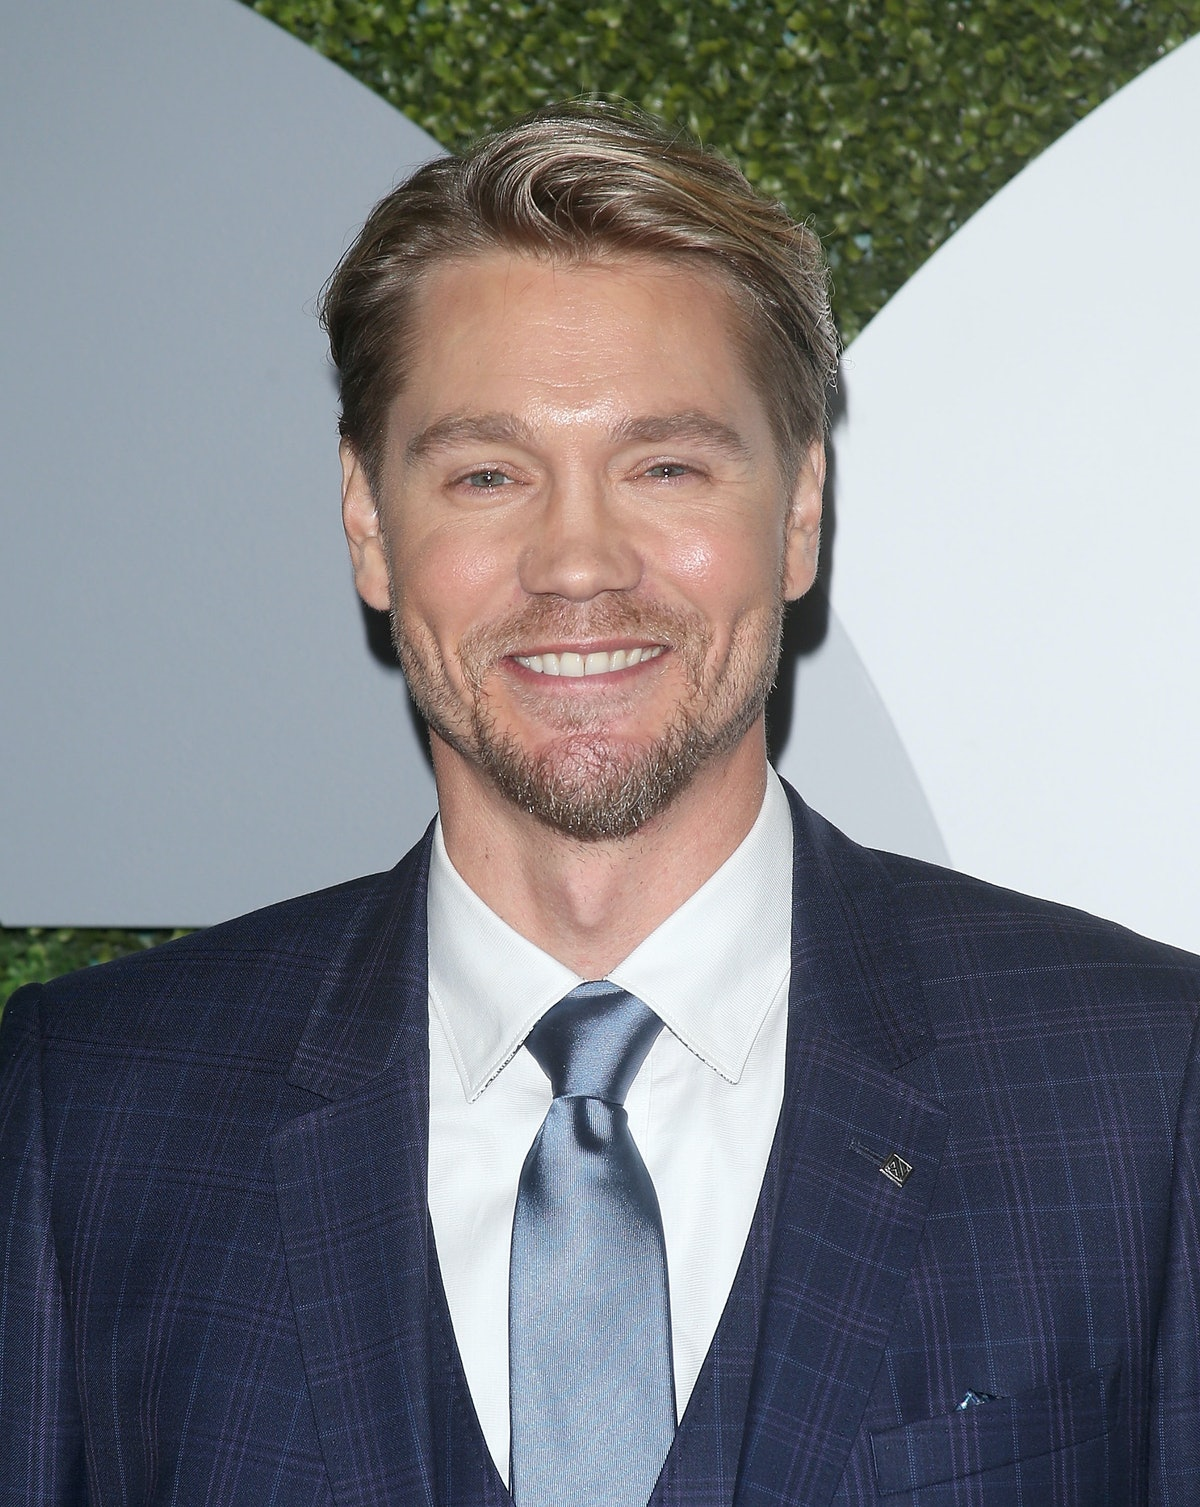 Chad Michael Murray Had An Explosive Hobby During His 'One Tree Hill' Days & It Definitely Wasn't CW-Approved